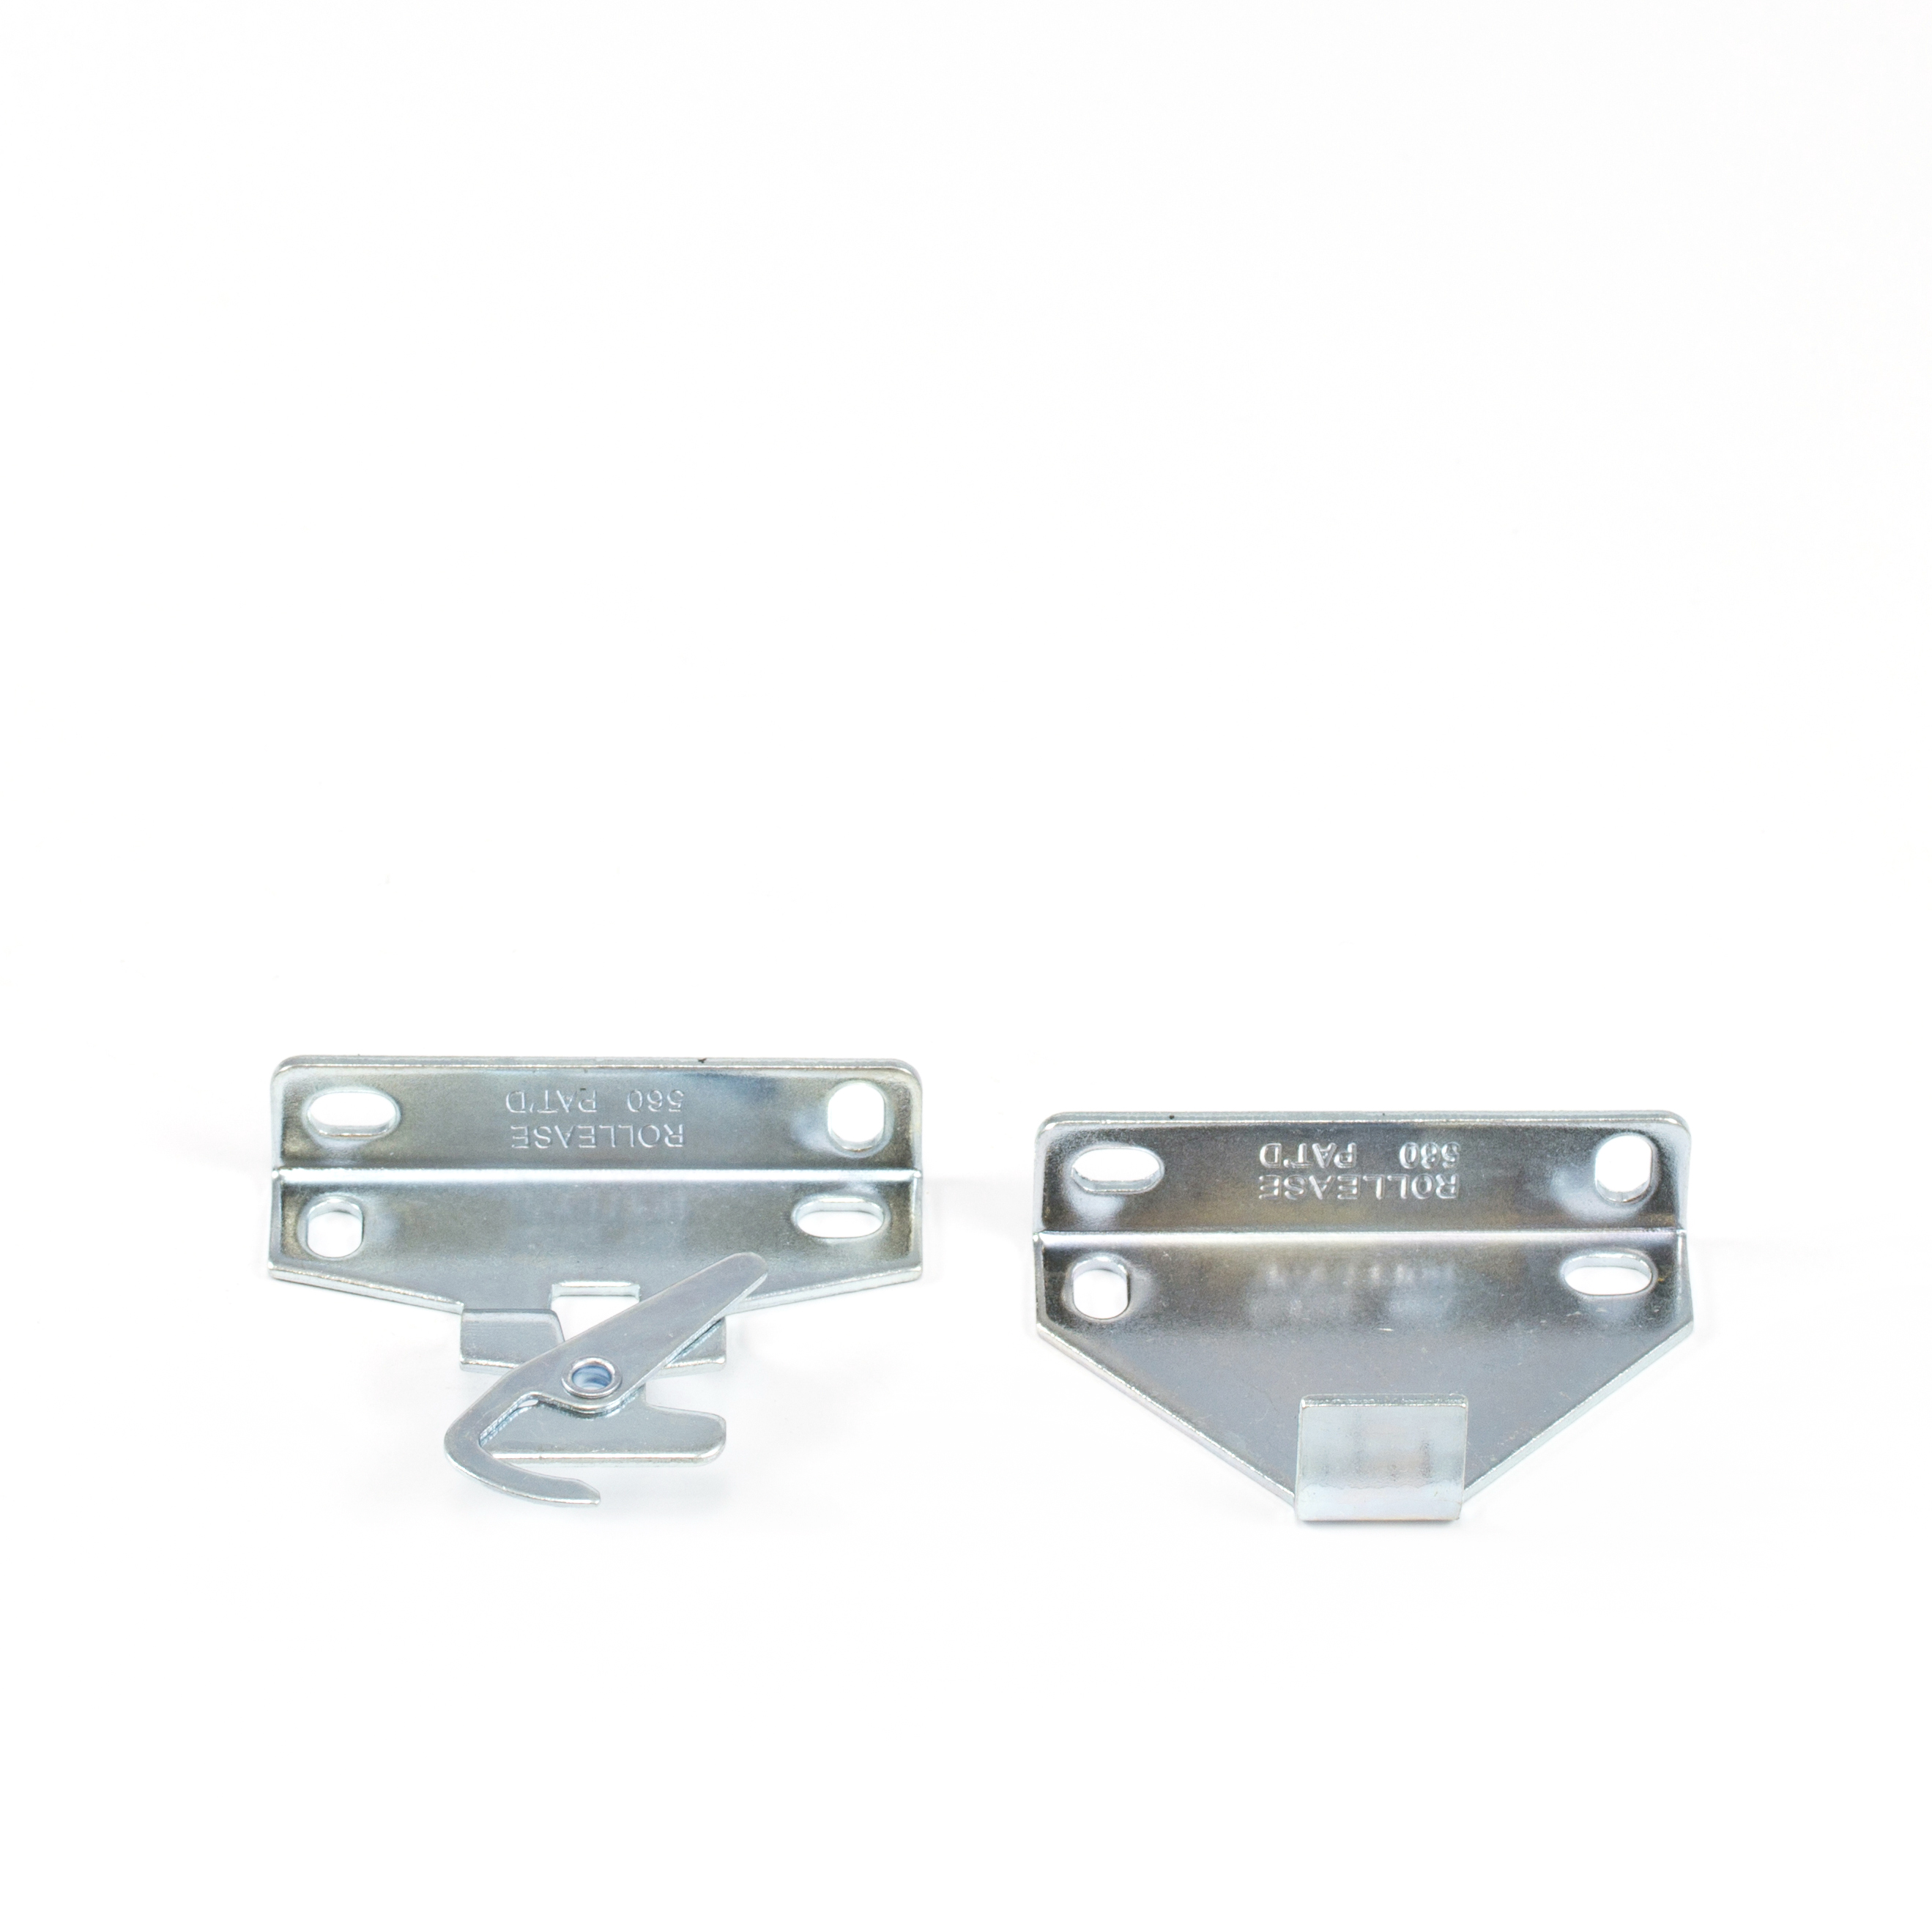 RollEase Mounting Bracket for R-16 Clutch 1-1/2